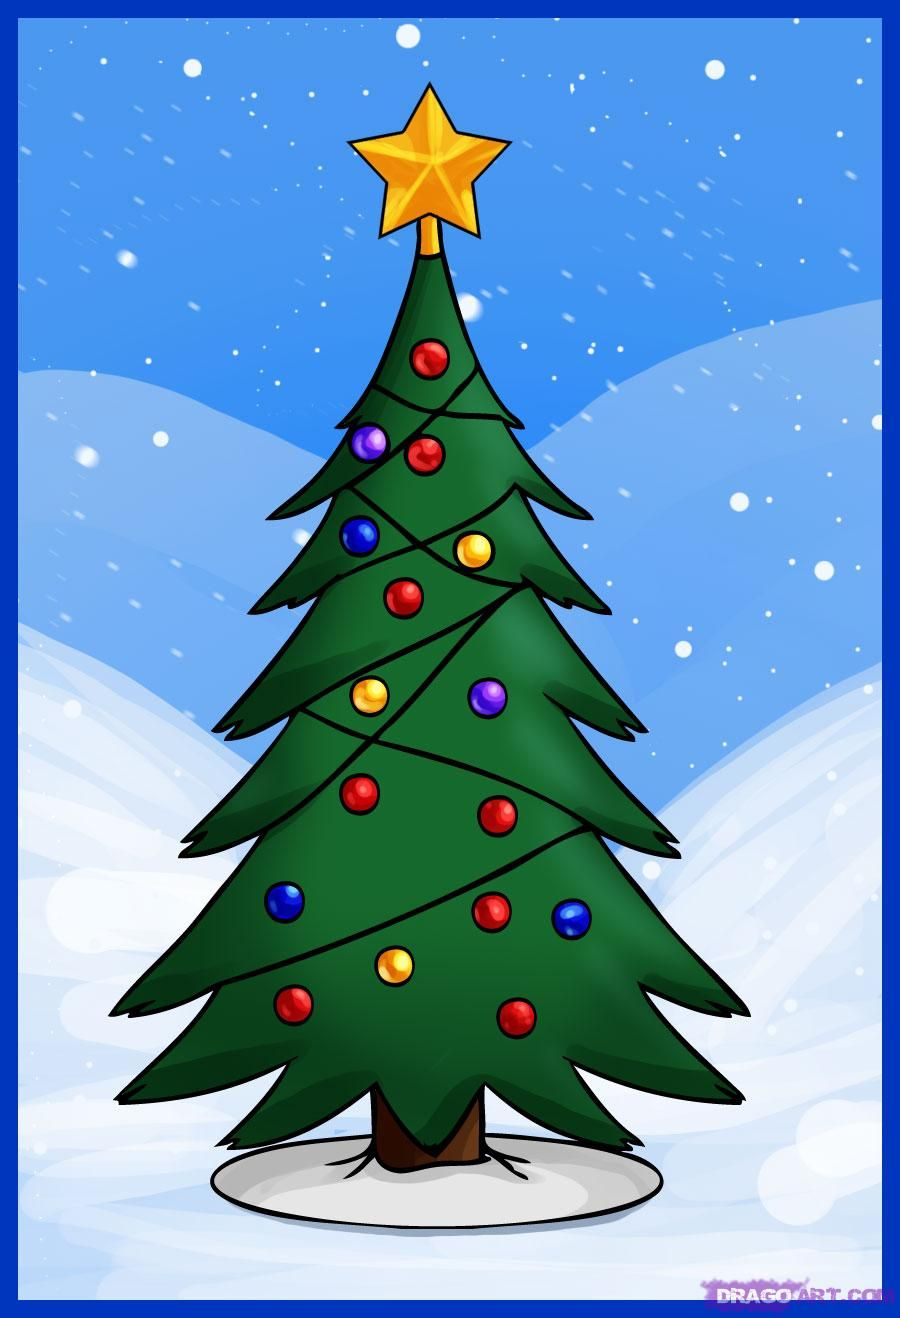 how to draw a christmas tree christmas tree drawing christmas tree drawing easy cartoon christmas tree cartoon christmas tree